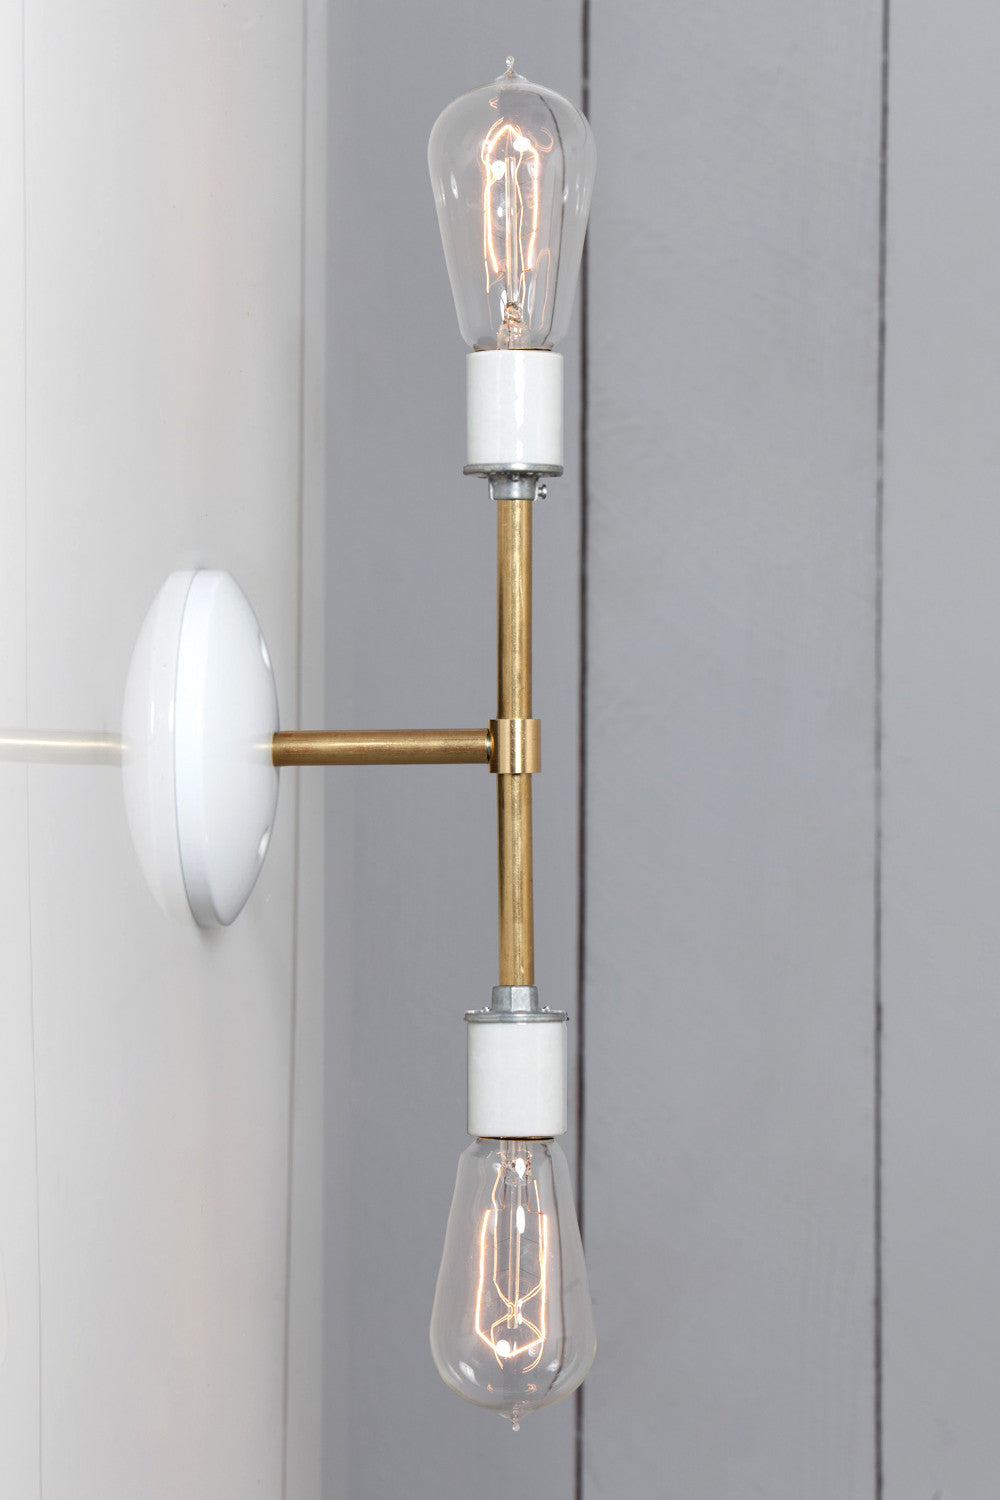 Industrial Wall Sconce Light Electric Exterior Wire Cage Lamp Brass Double Bare Bulb